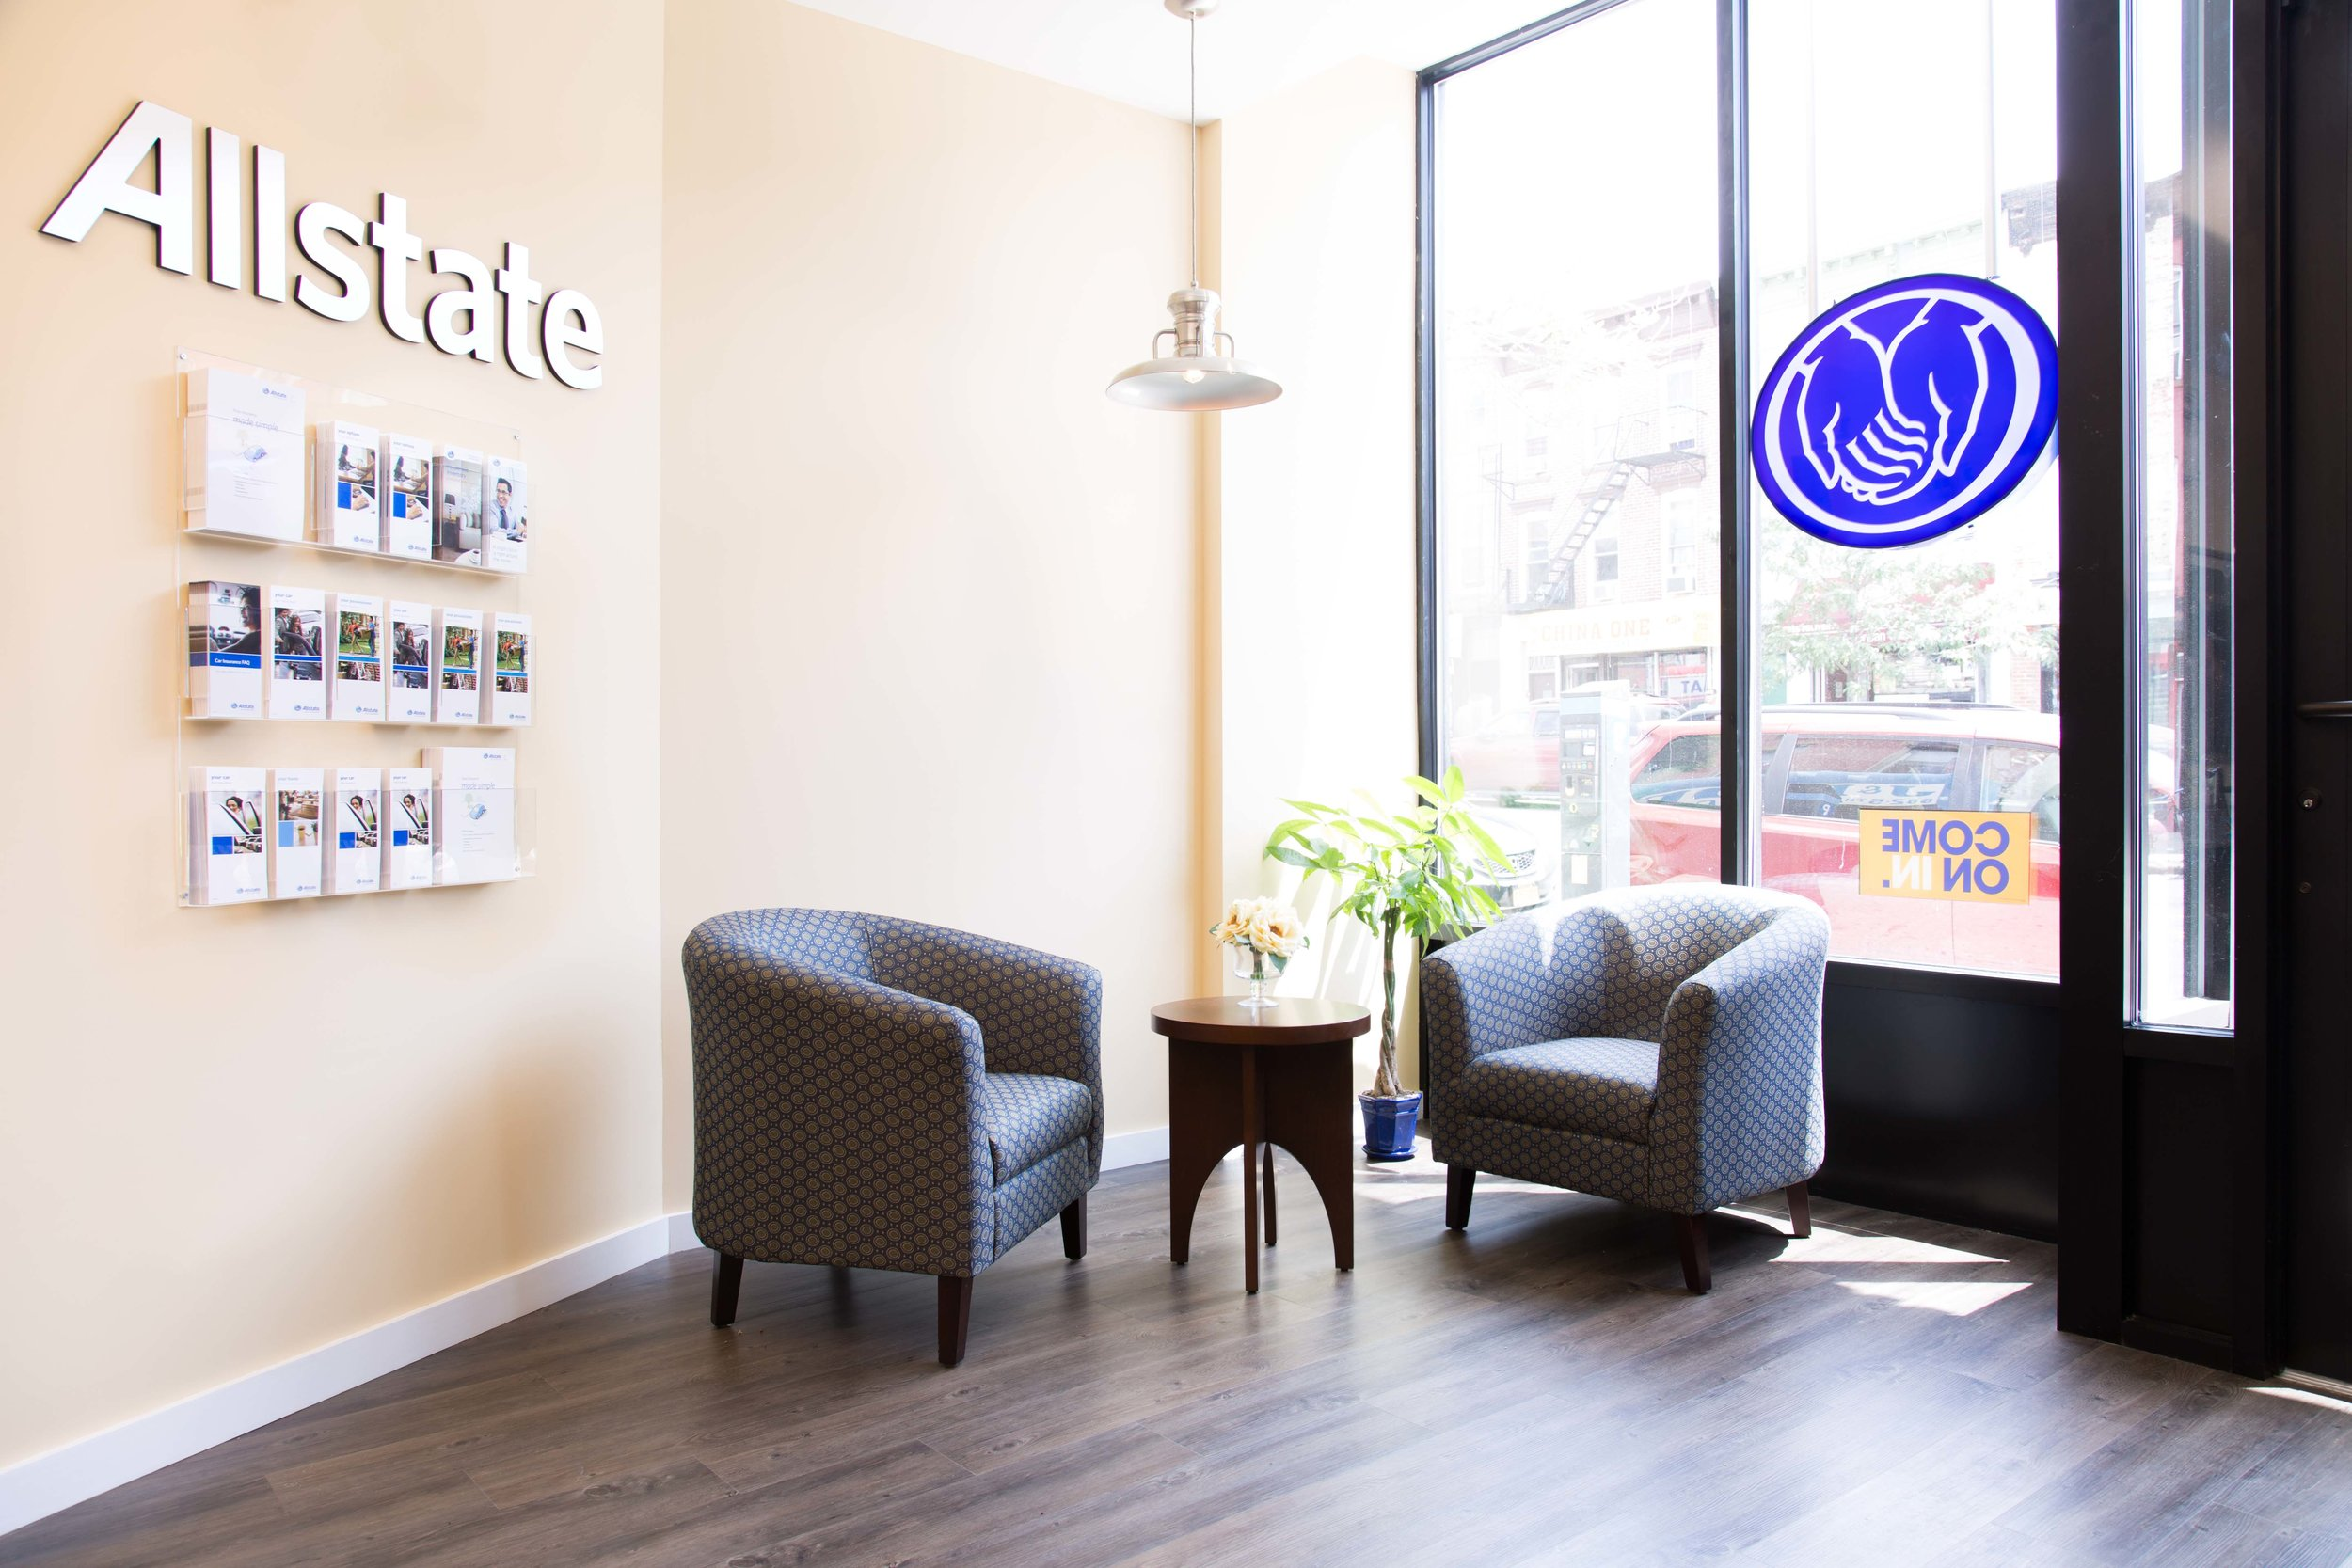 Allstate Insurance Office  684 5th Ave, Brooklyn, NY 11215  Client: Giancola Contractors Inc.